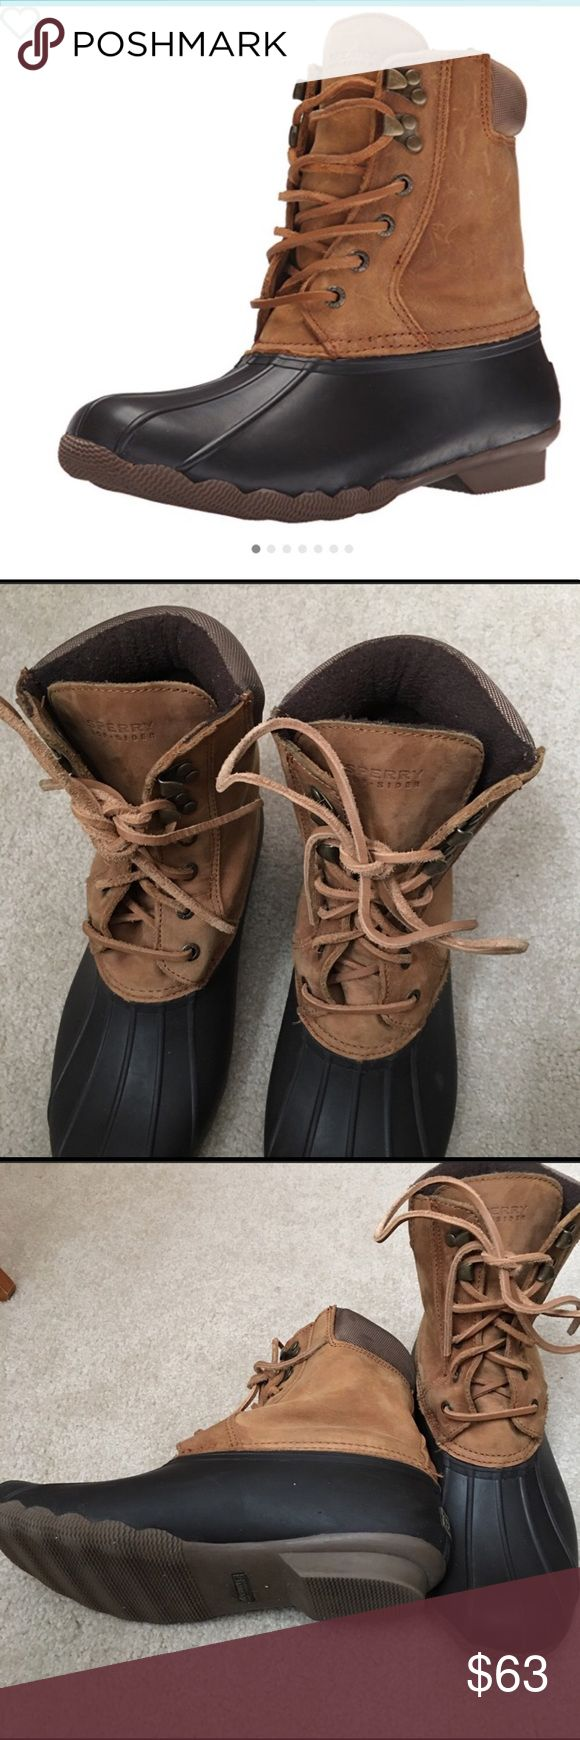 Sperry duck boots women's size 10 Super cute and in like new condition. Worn maybe 2-3 times they are just a bit big on me. Sperry Shoes Winter & Rain Boots